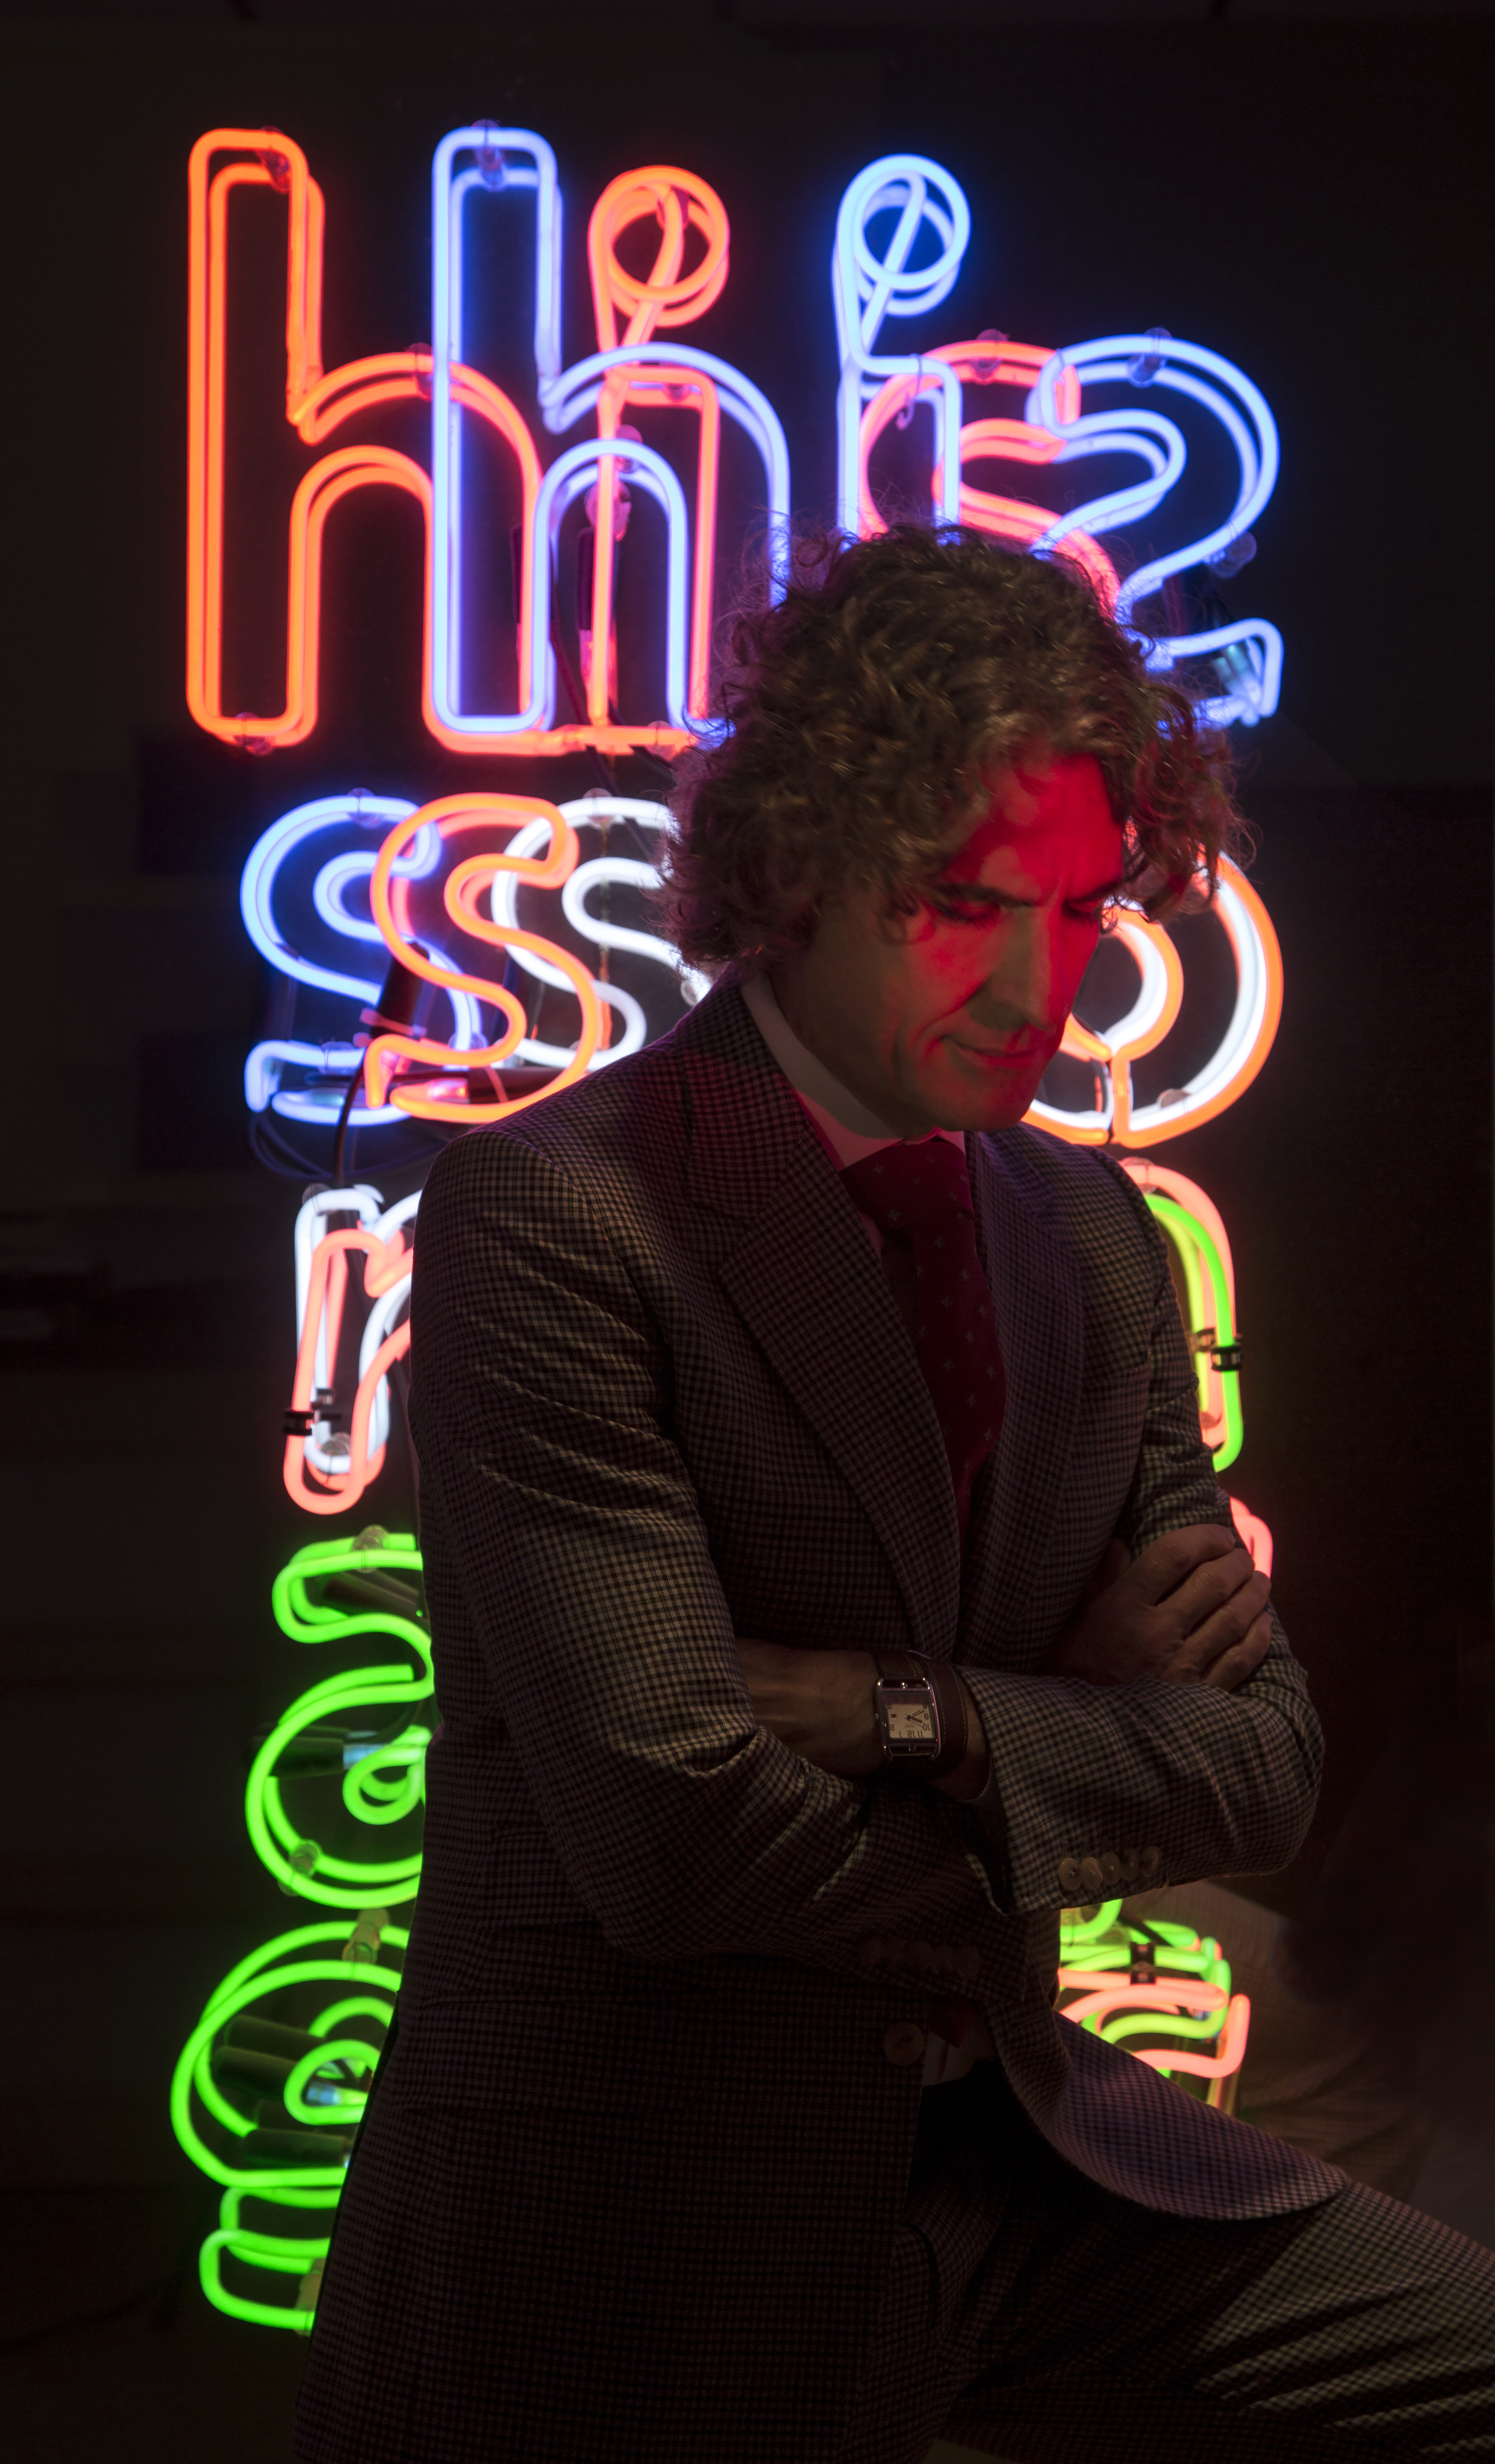 Richard Wright sitting in front of a multi-colored neon light installation.